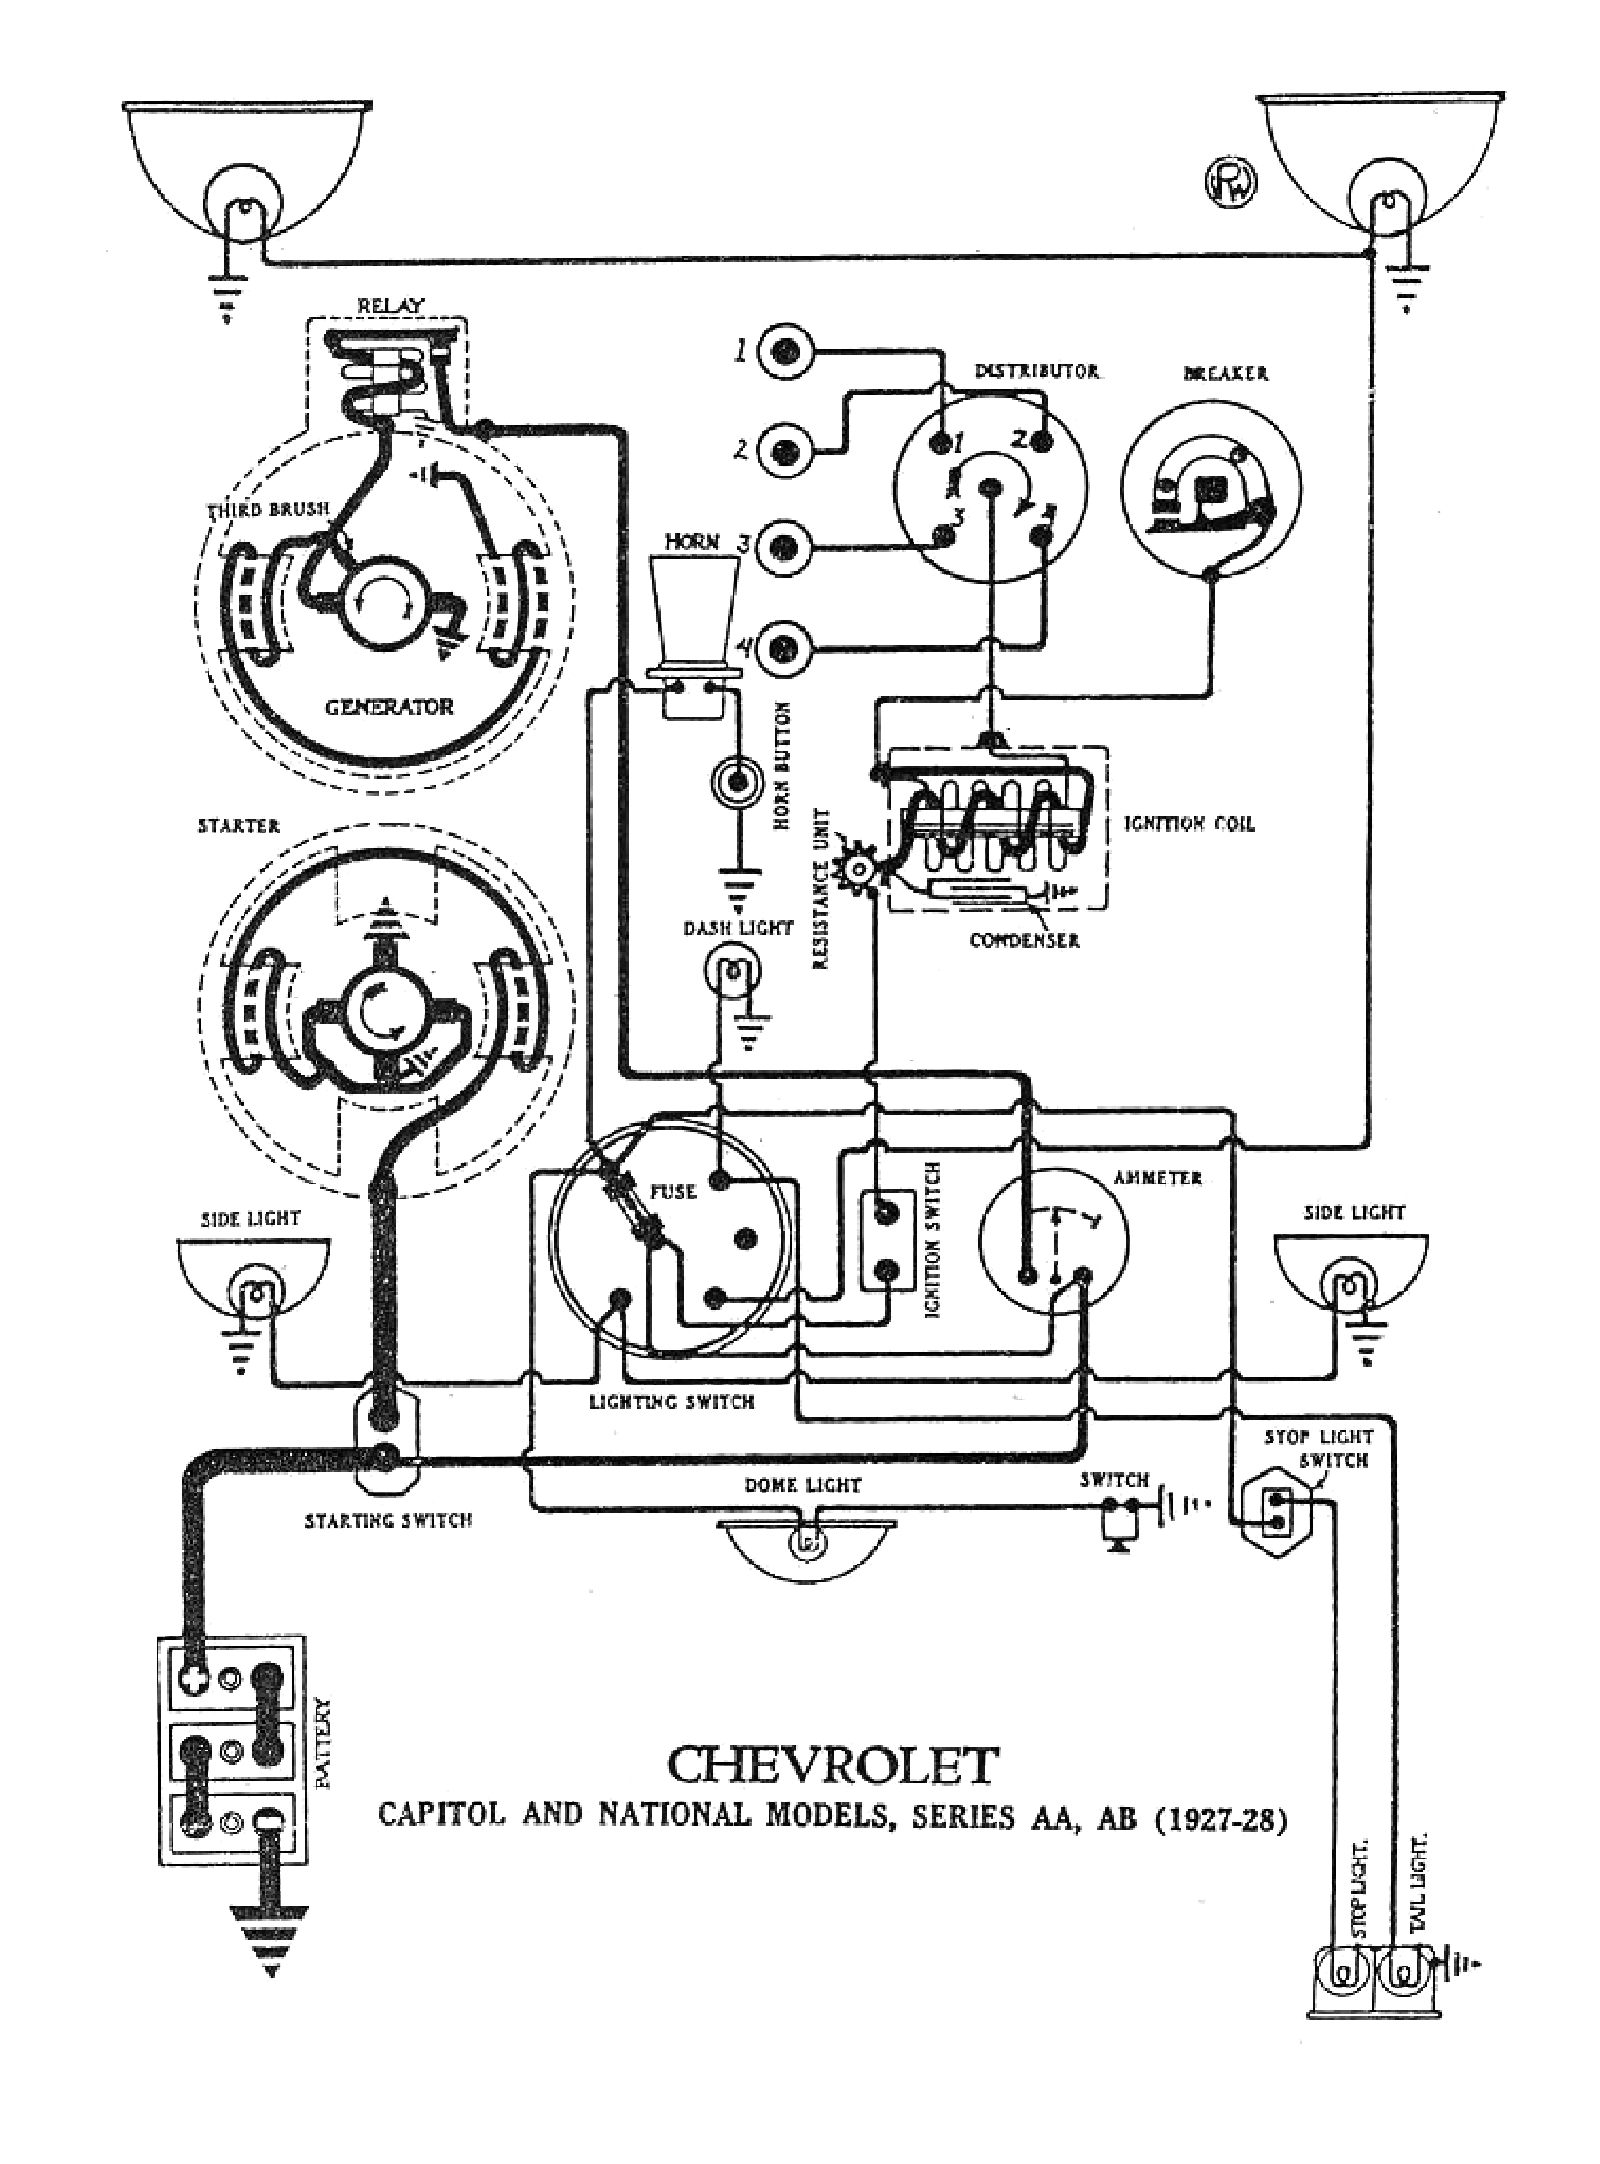 1932 Dodge Wiring Diagram Will Be A Thing 2009 Chevrolet Silverado 1946 Truck Free Engine Image Charger